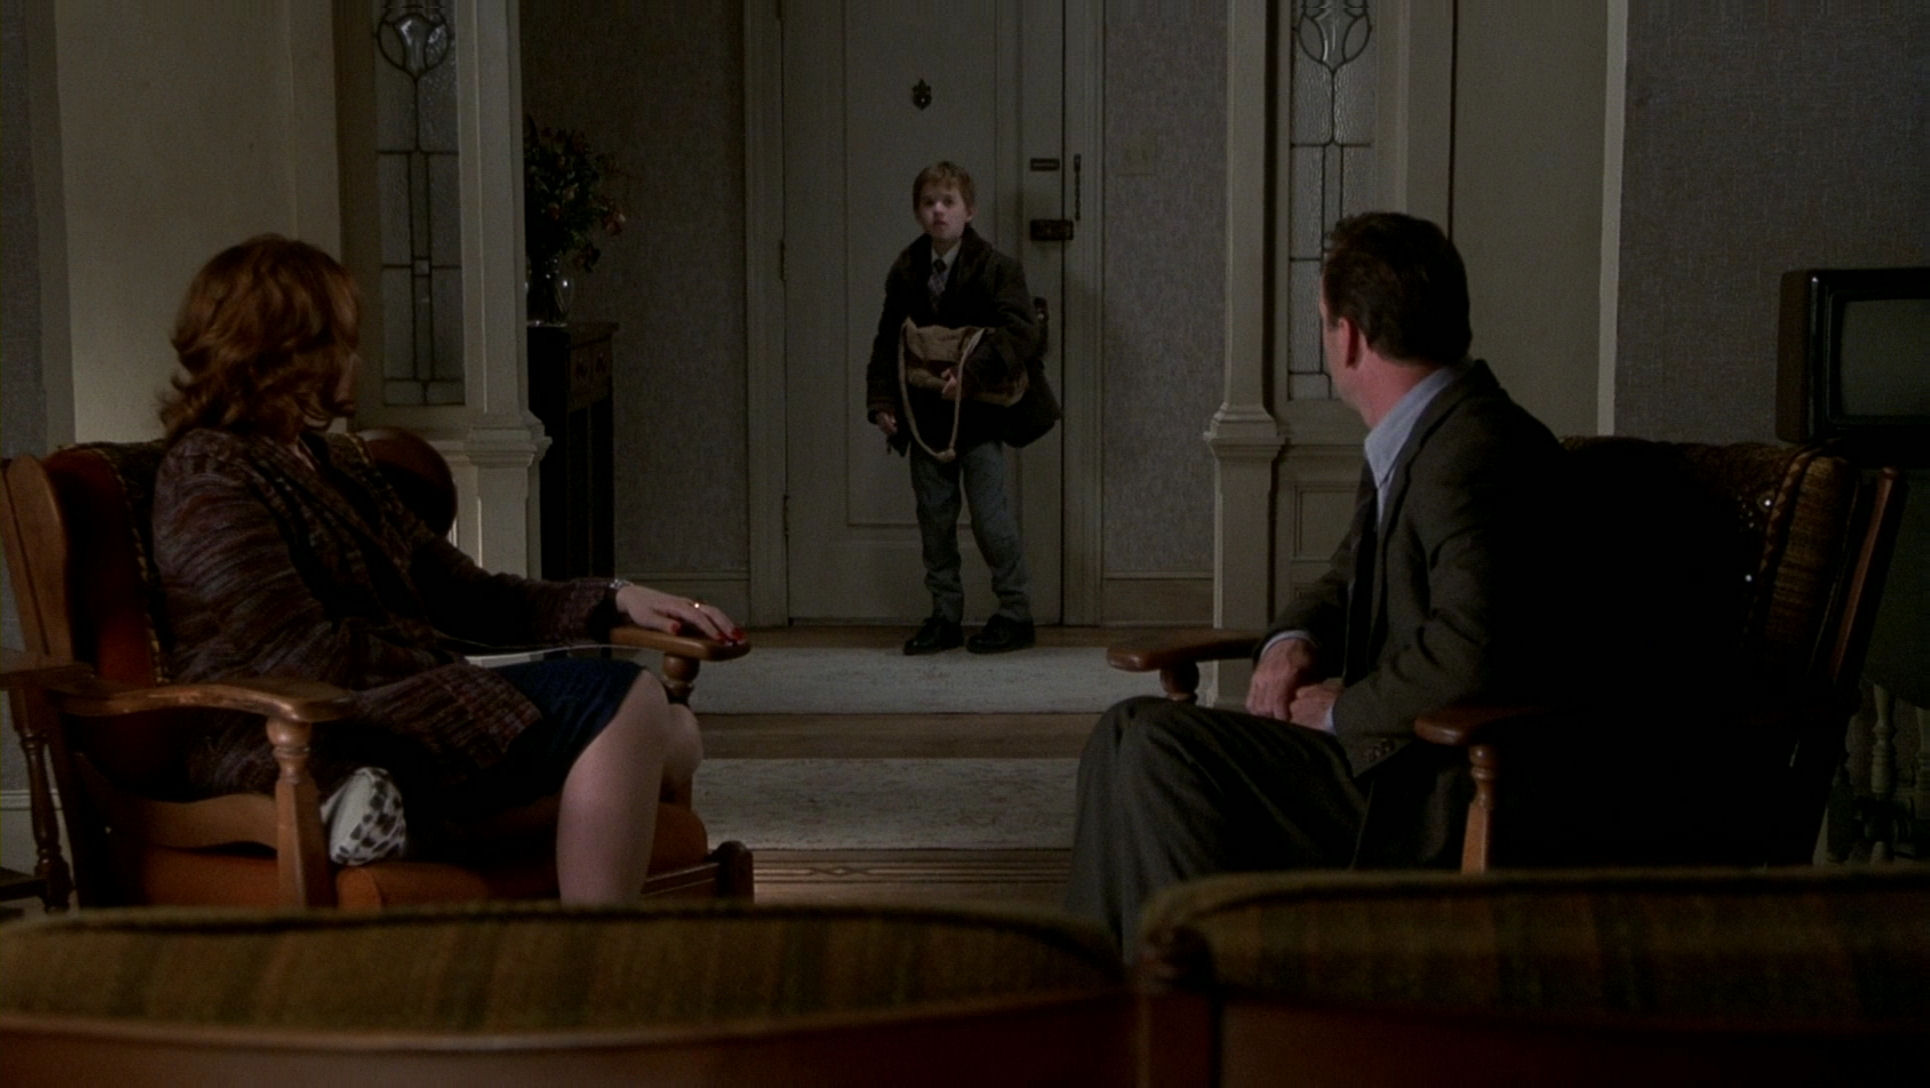 mise en scene the sixth sense film analysis